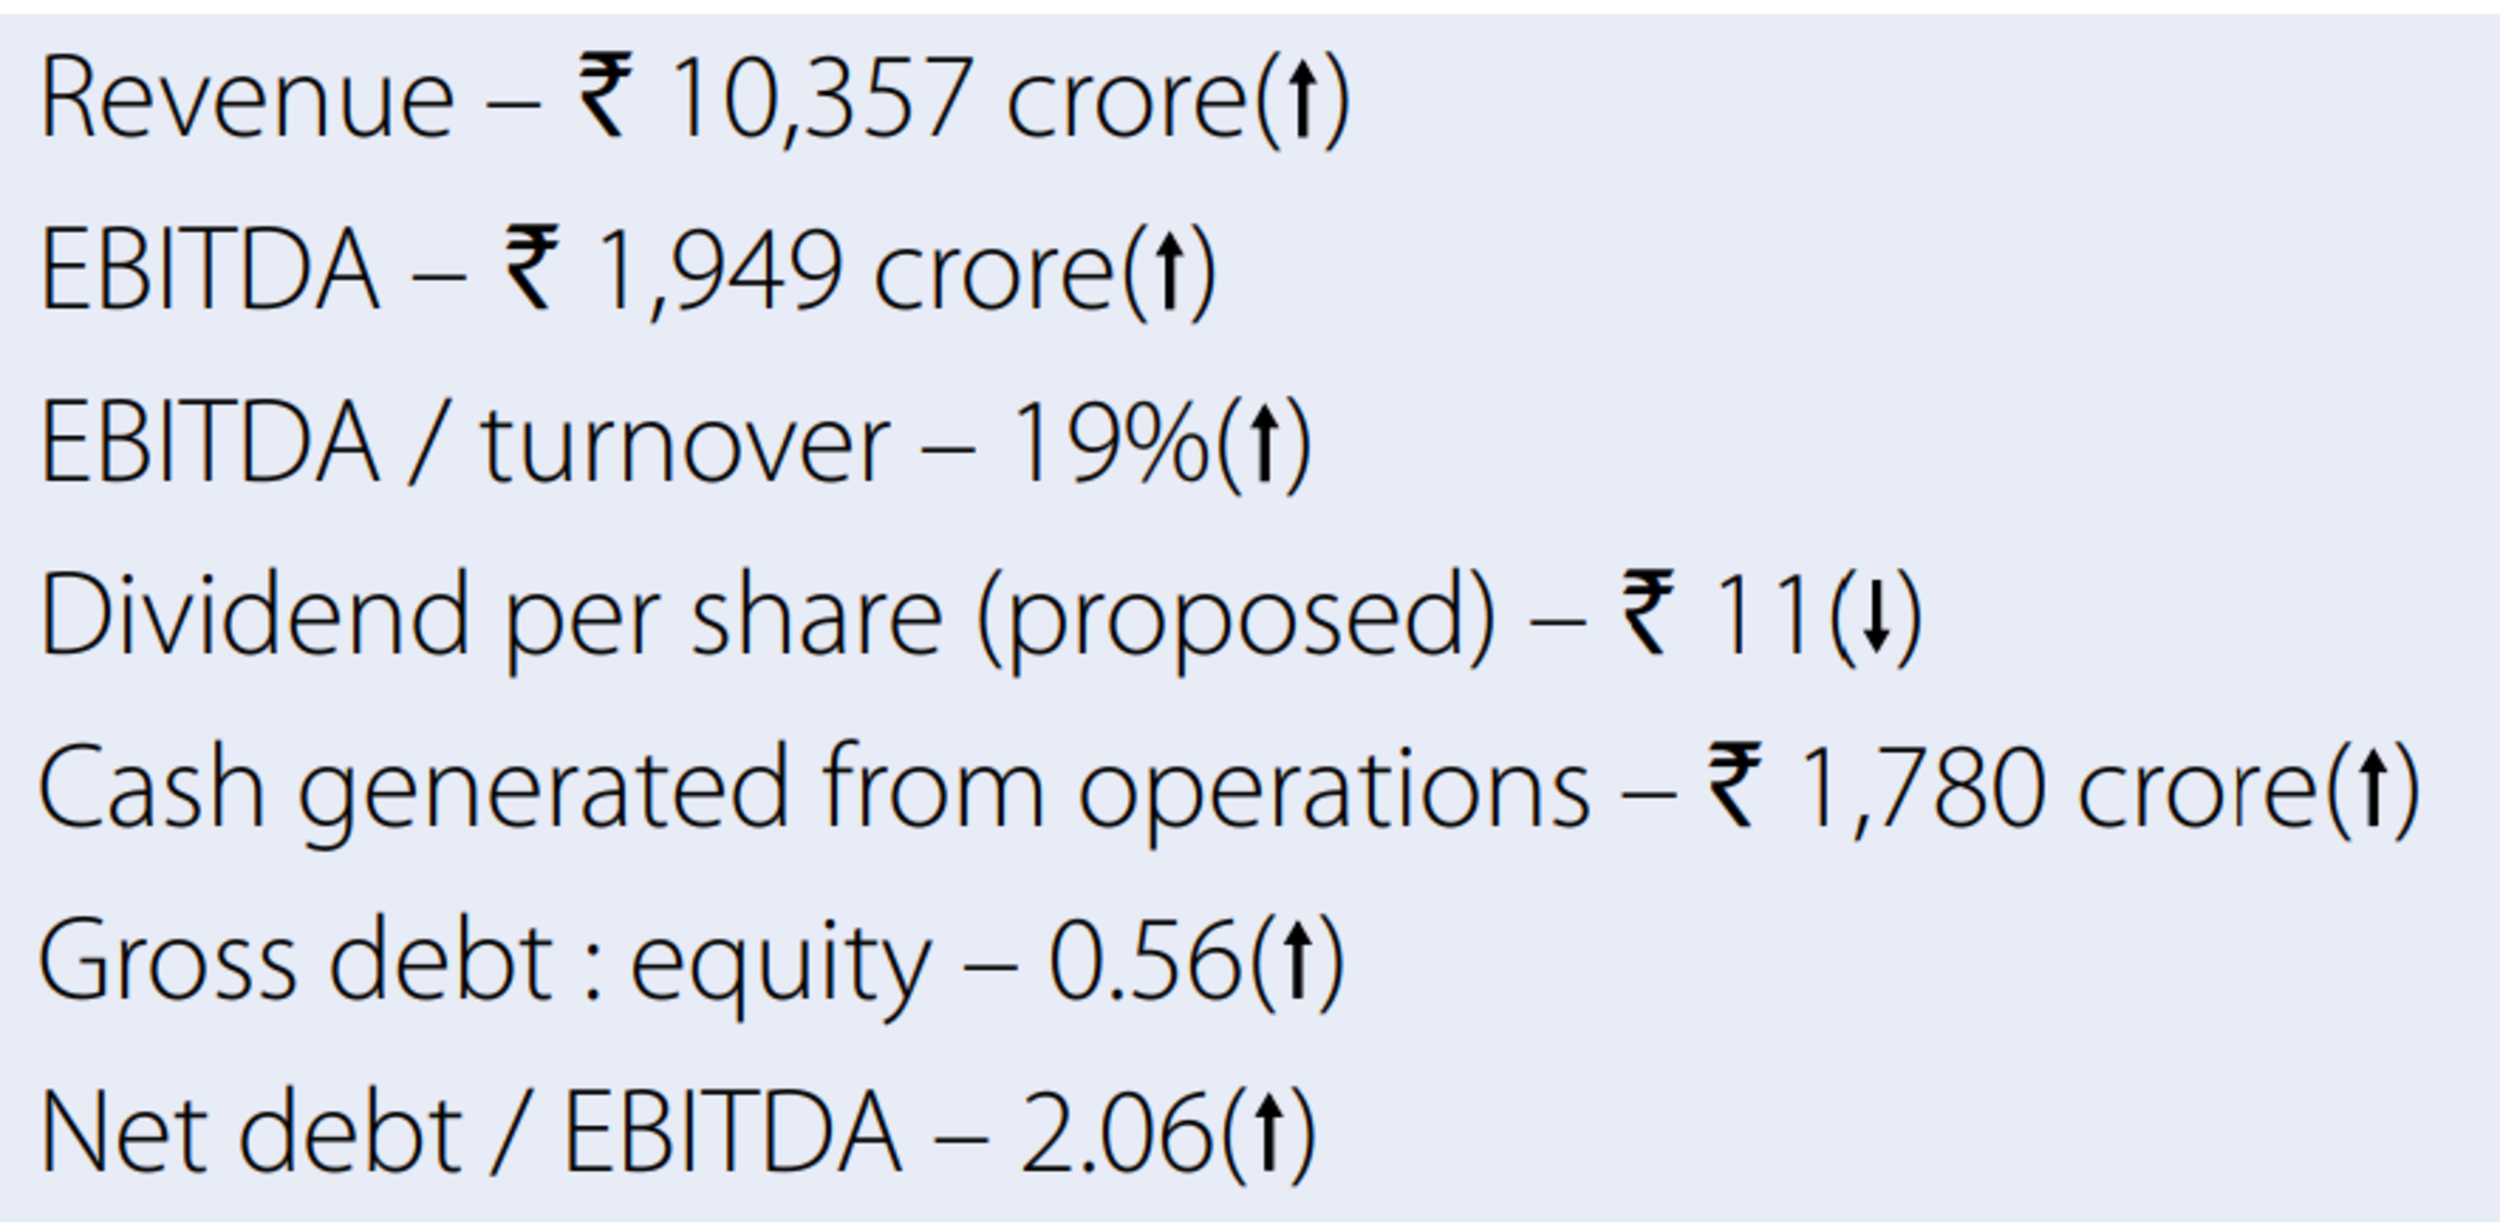 financials of Tata Chemicals limited